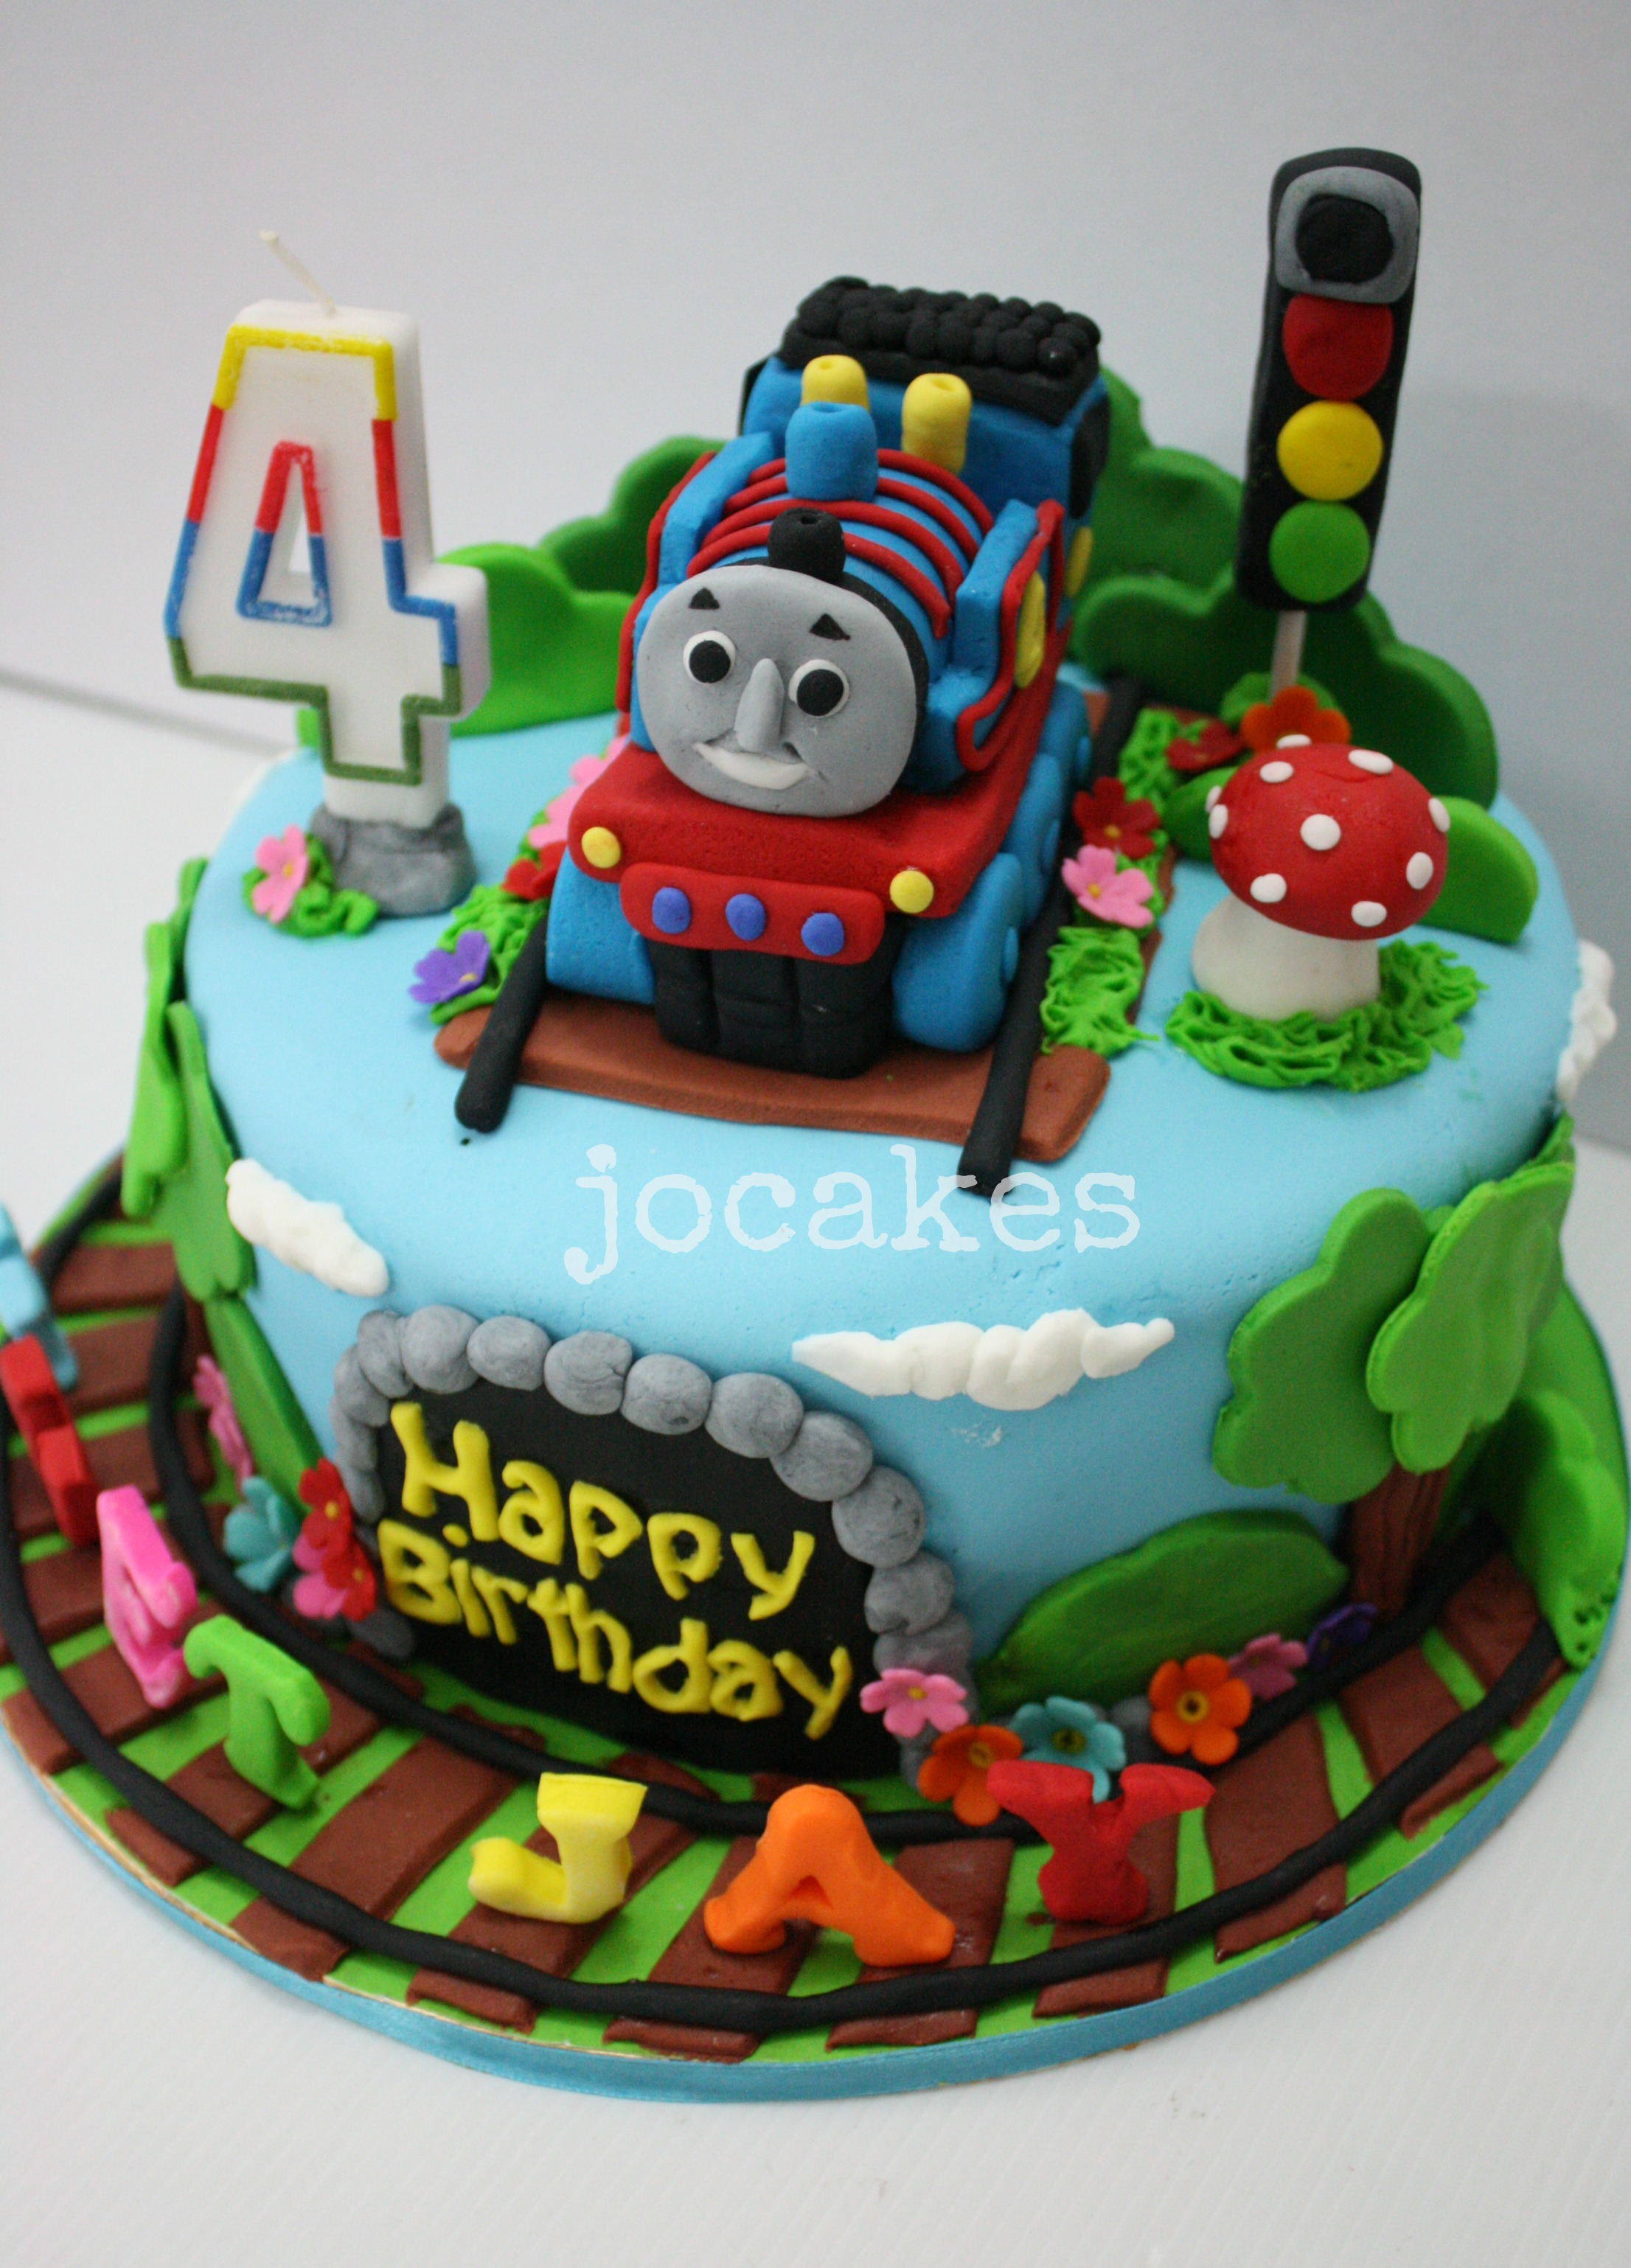 Thomas the Train cake be equipped thomas the train cake topper edible be equipped thomas and friends cake pan